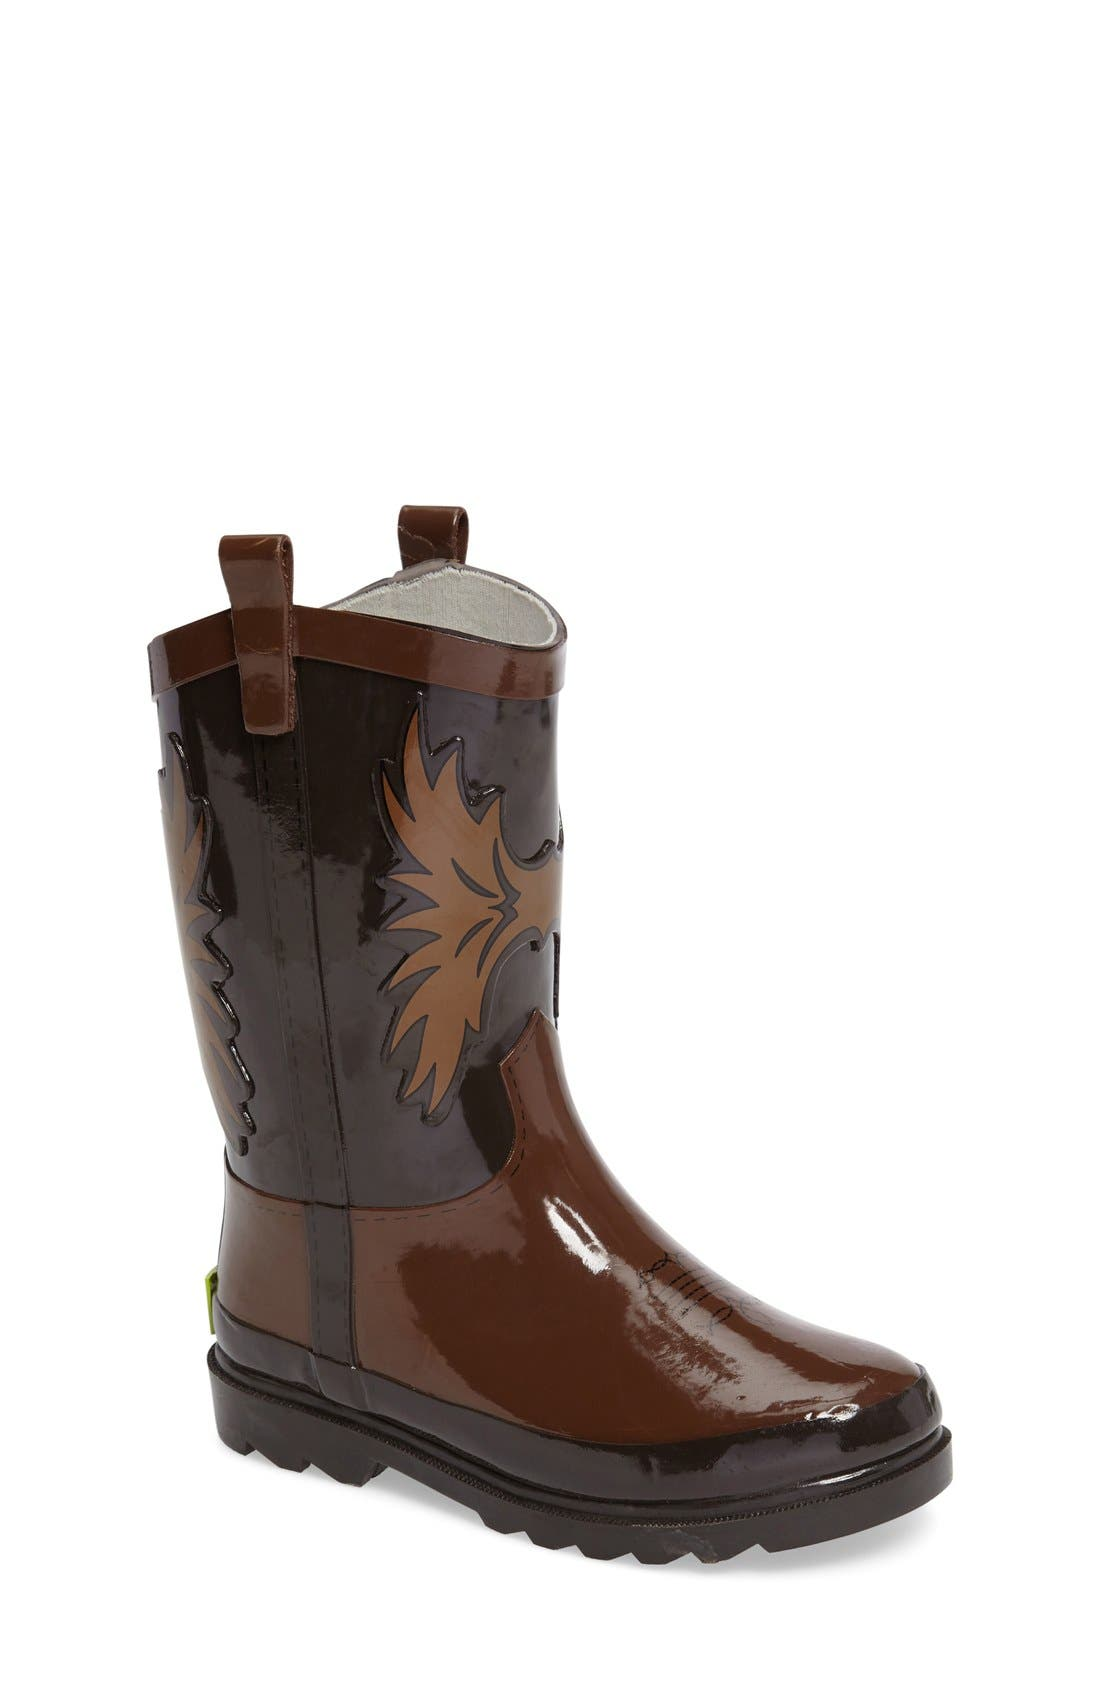 Cowboy Waterproof Rain Boot,                             Main thumbnail 1, color,                             Brown